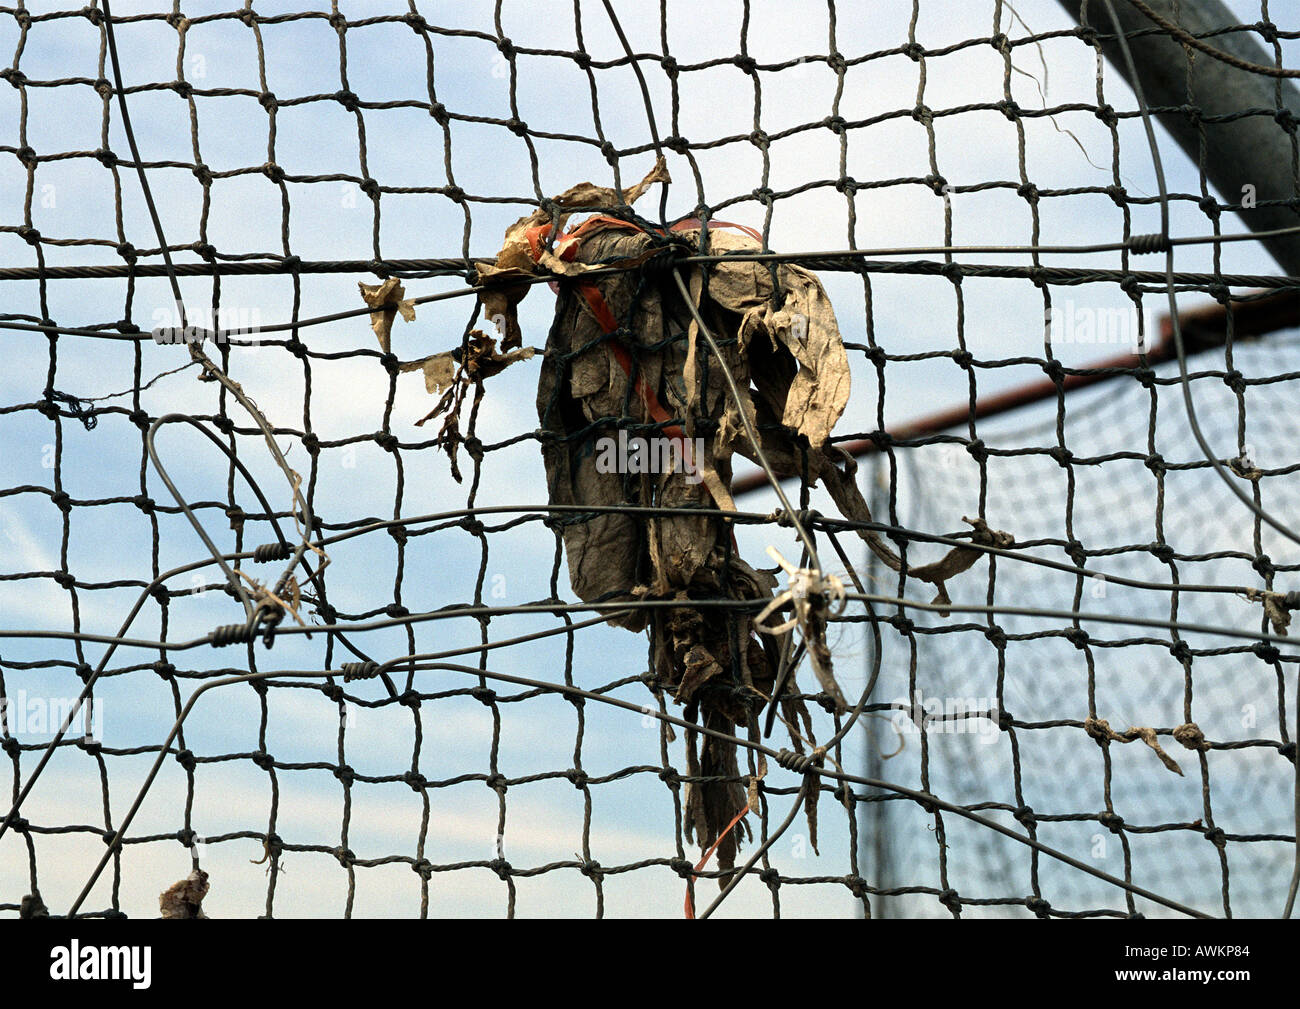 Trash tangled in wire fence Stock Photo